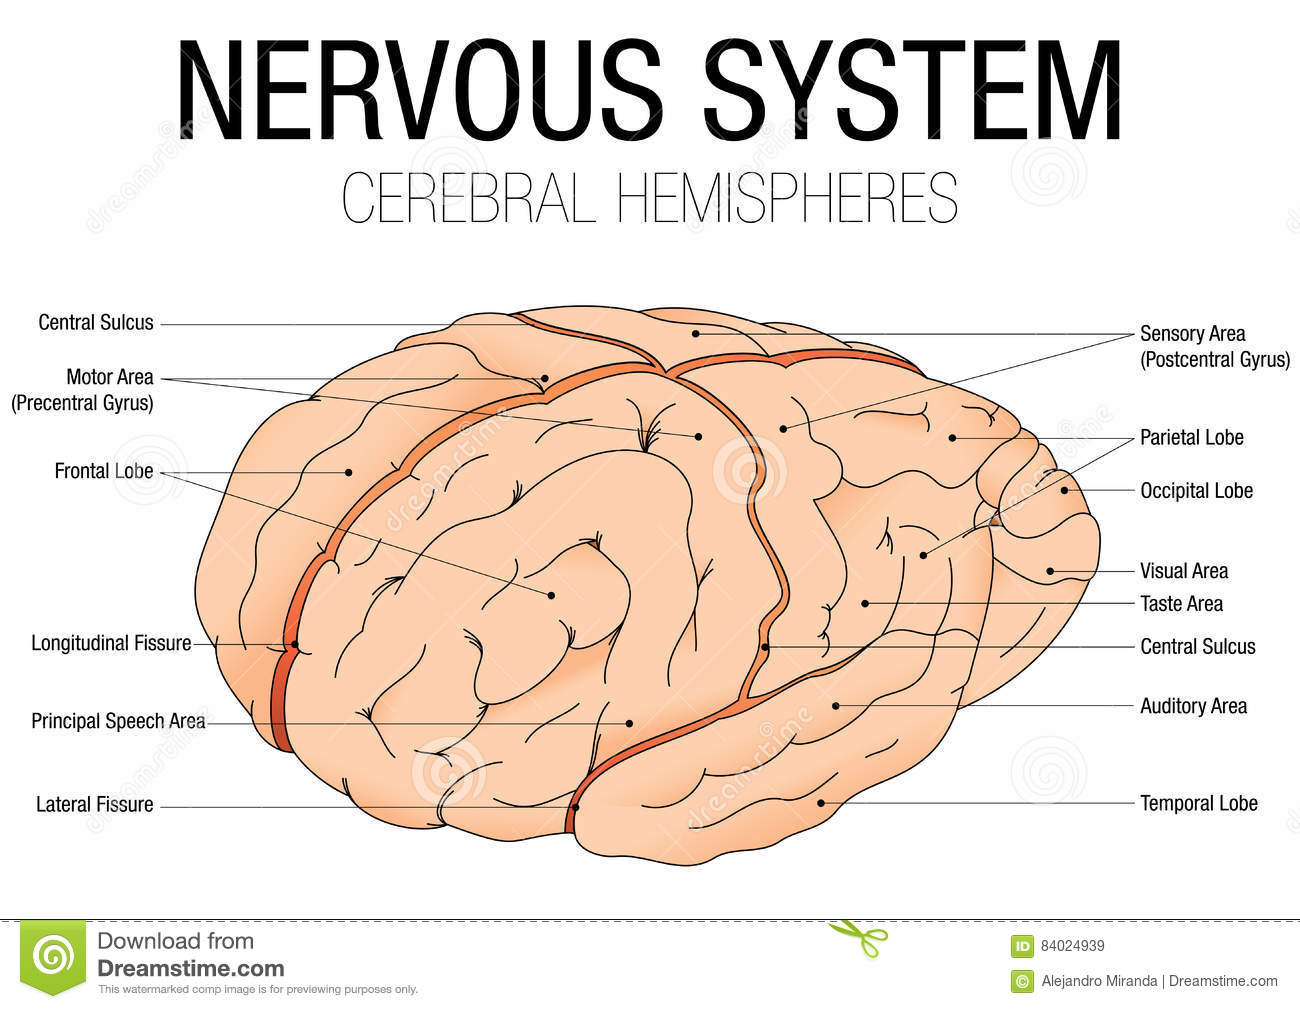 Nervous System Cerebral Hemispheres With Parts Name Stock Vector